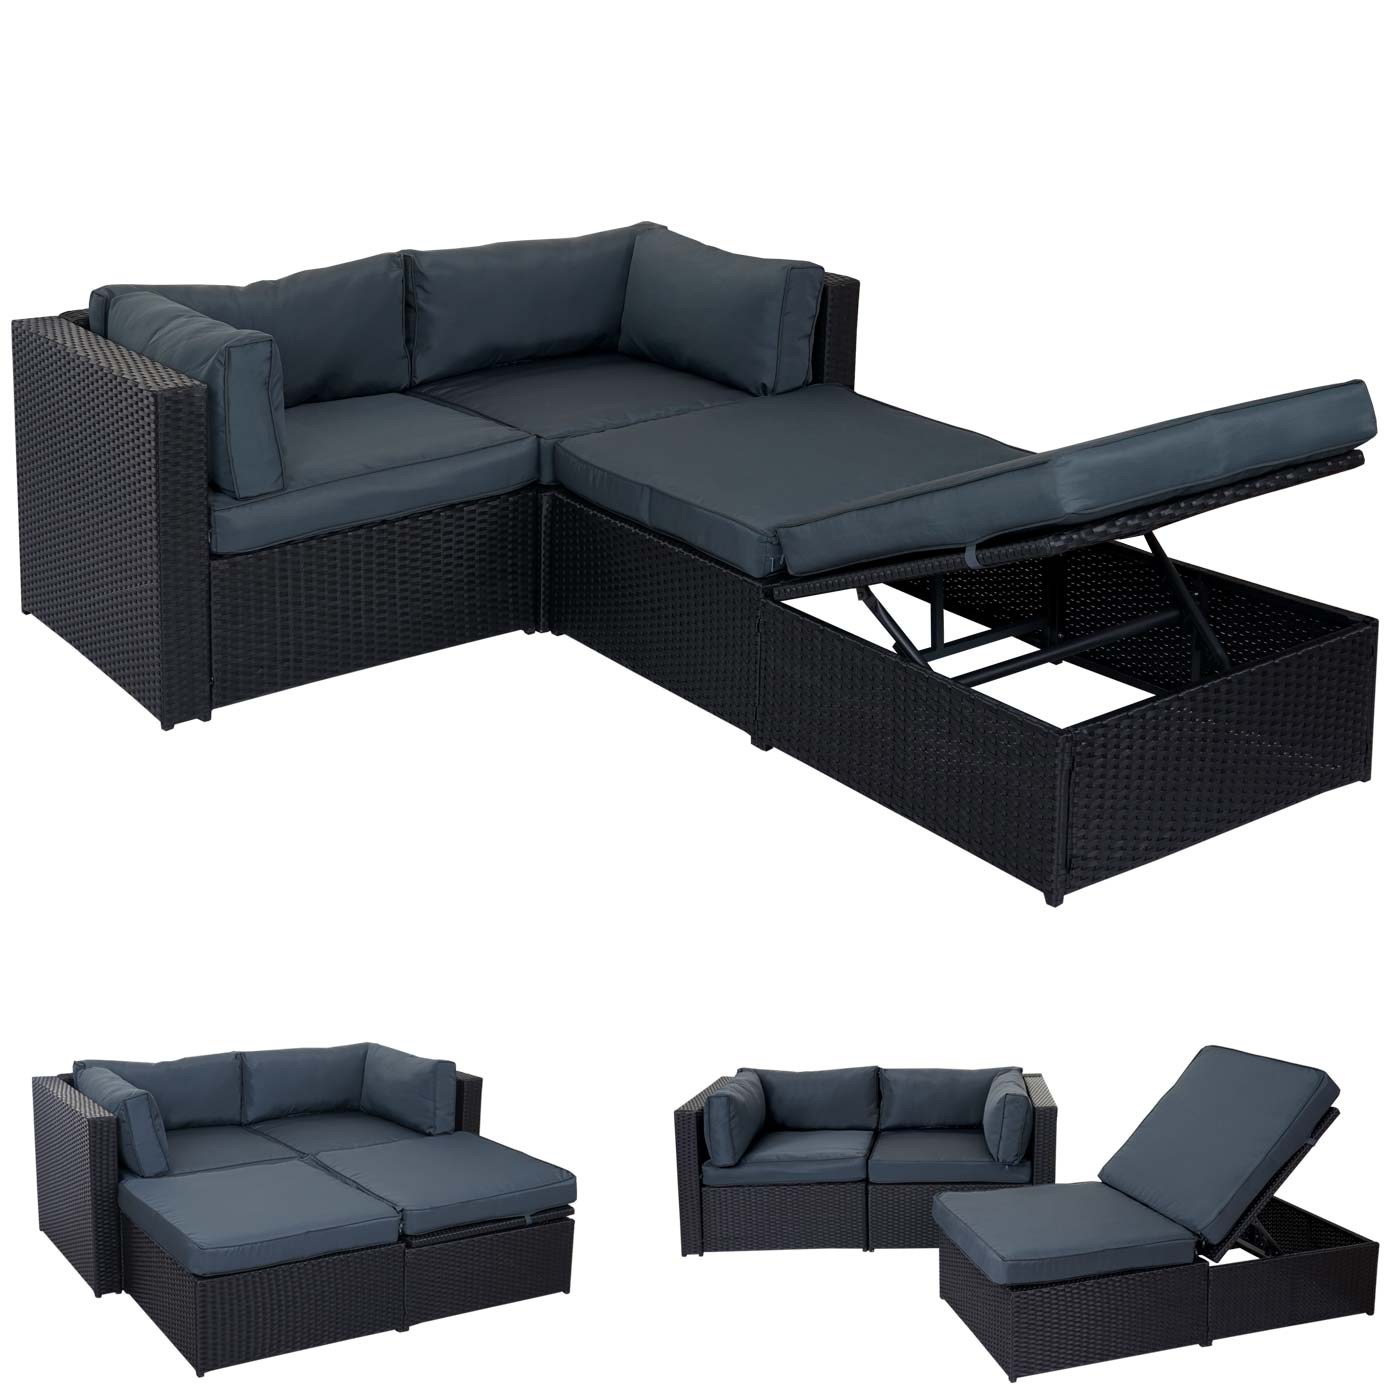 poly rattan garnitur bursa gartengarnitur lounge set alu schwarz kissen grau ebay. Black Bedroom Furniture Sets. Home Design Ideas